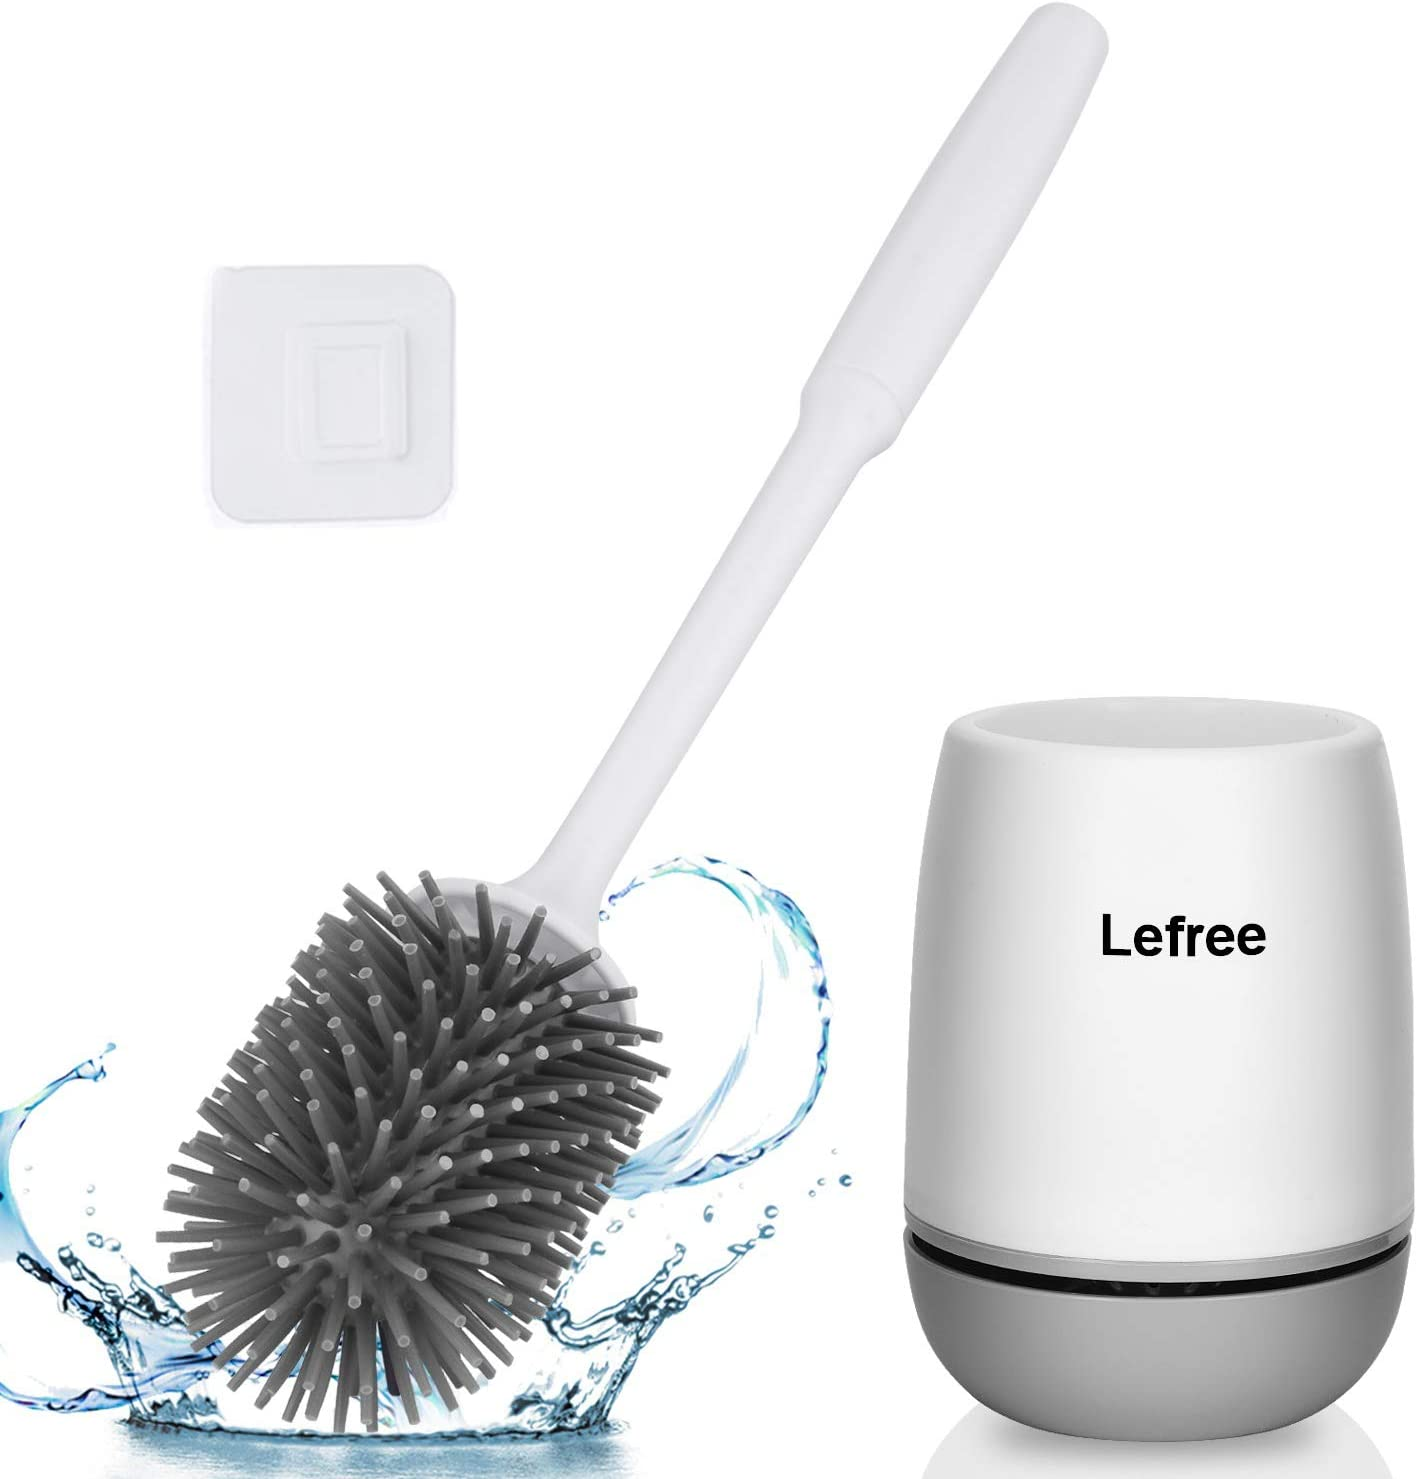 Lefree Silicone Toilet Brush and Holder,Bathroom Cleaner Brush Set,Non-Slip Handle Toilet Bowl Brush with TPR Soft Bristle,Wall Mounted/Floor Standing